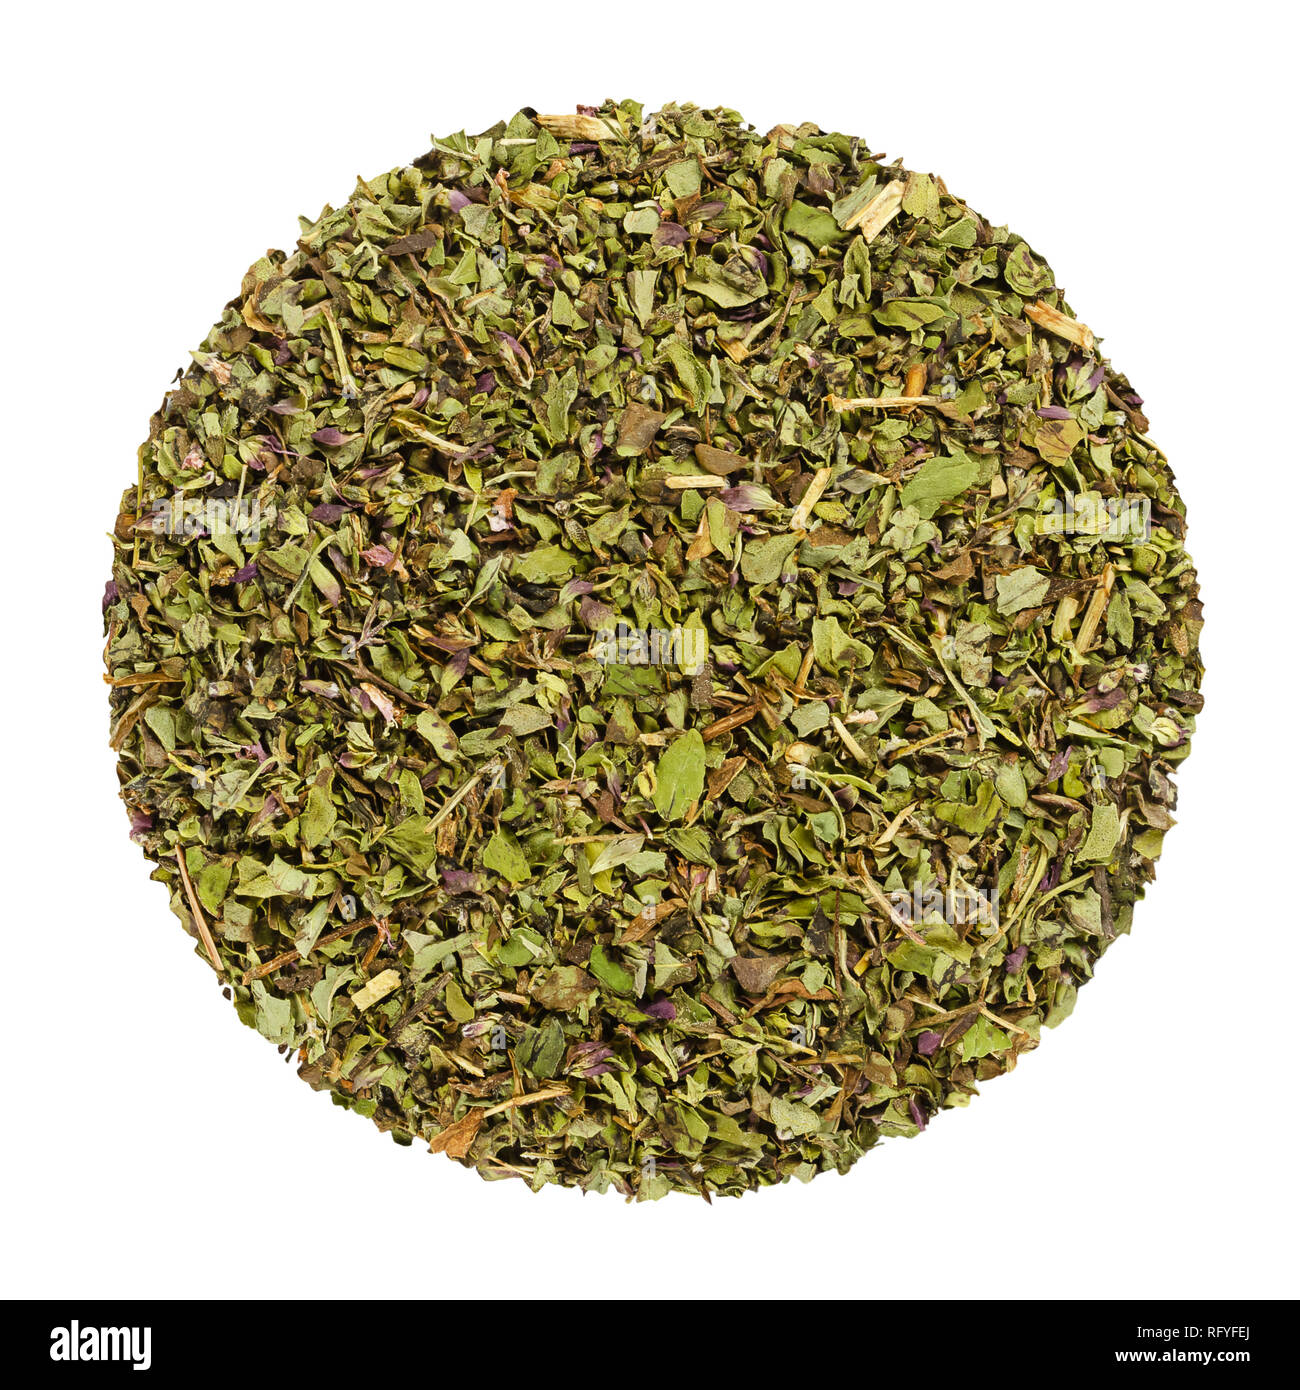 Dried oregano, herb circle from above, isolated, over white. Disc made of Origanum vulgare, sometimes wild marjoram. Herb. - Stock Image